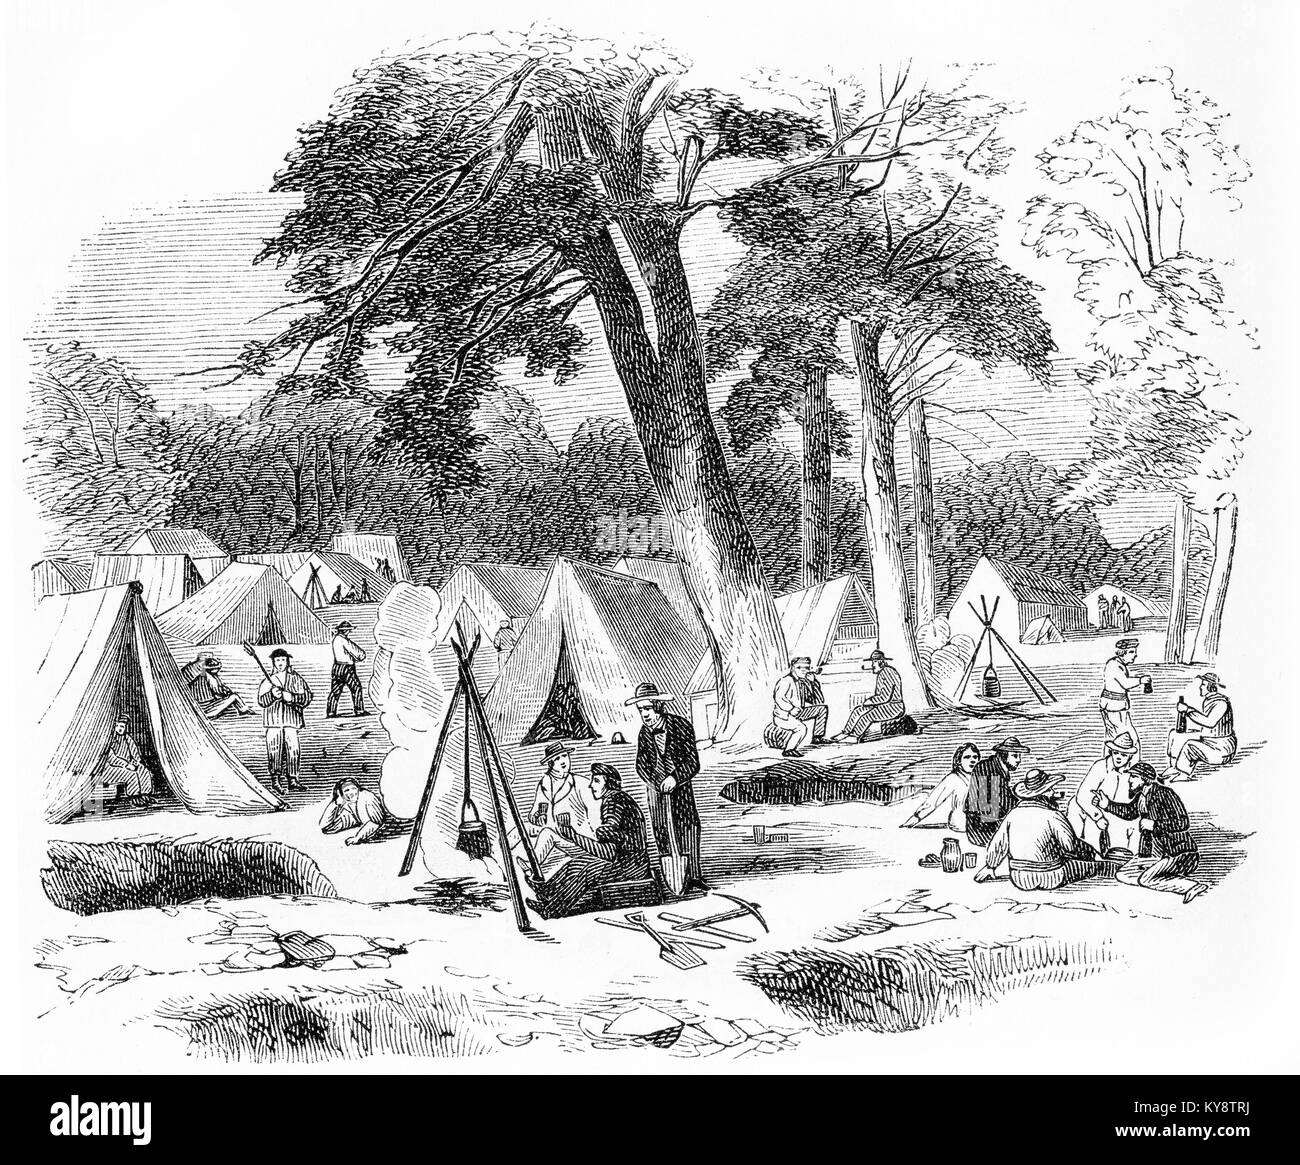 Engraving of prospectors camped at a gold-field during the goldrushes of the 1800s. From an original engraving in - Stock Image